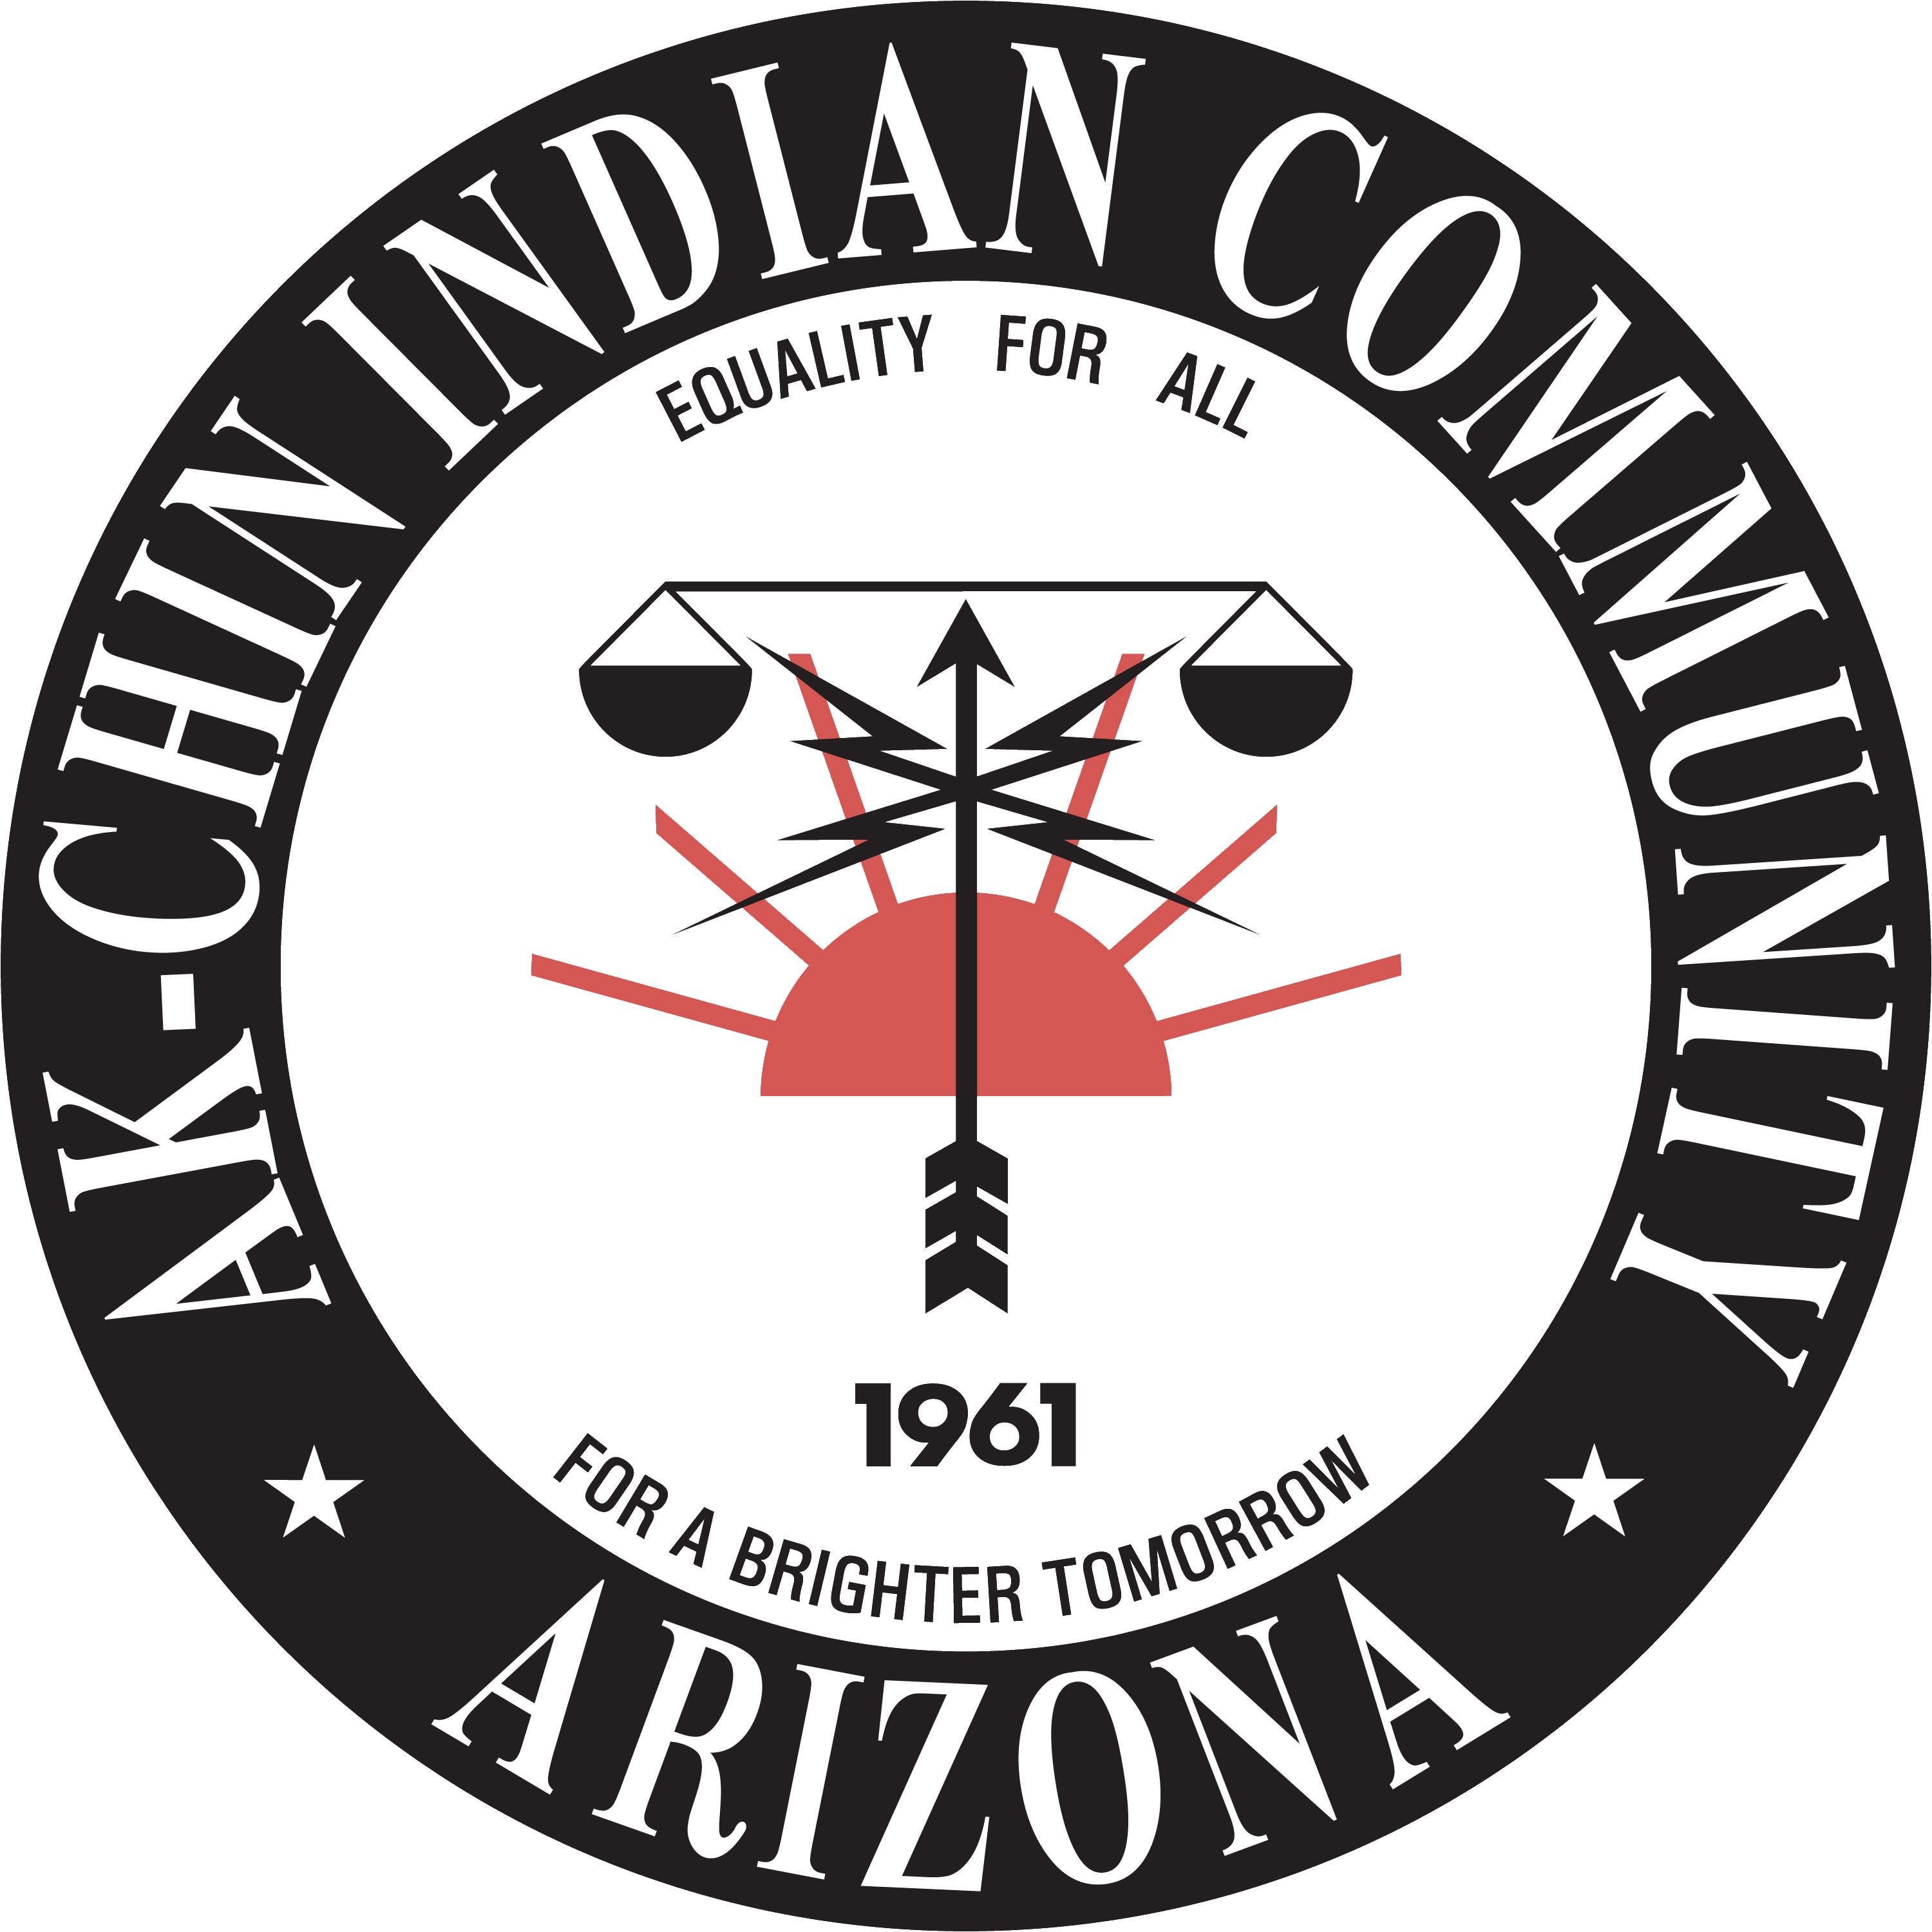 AK-CHIN Indian Community